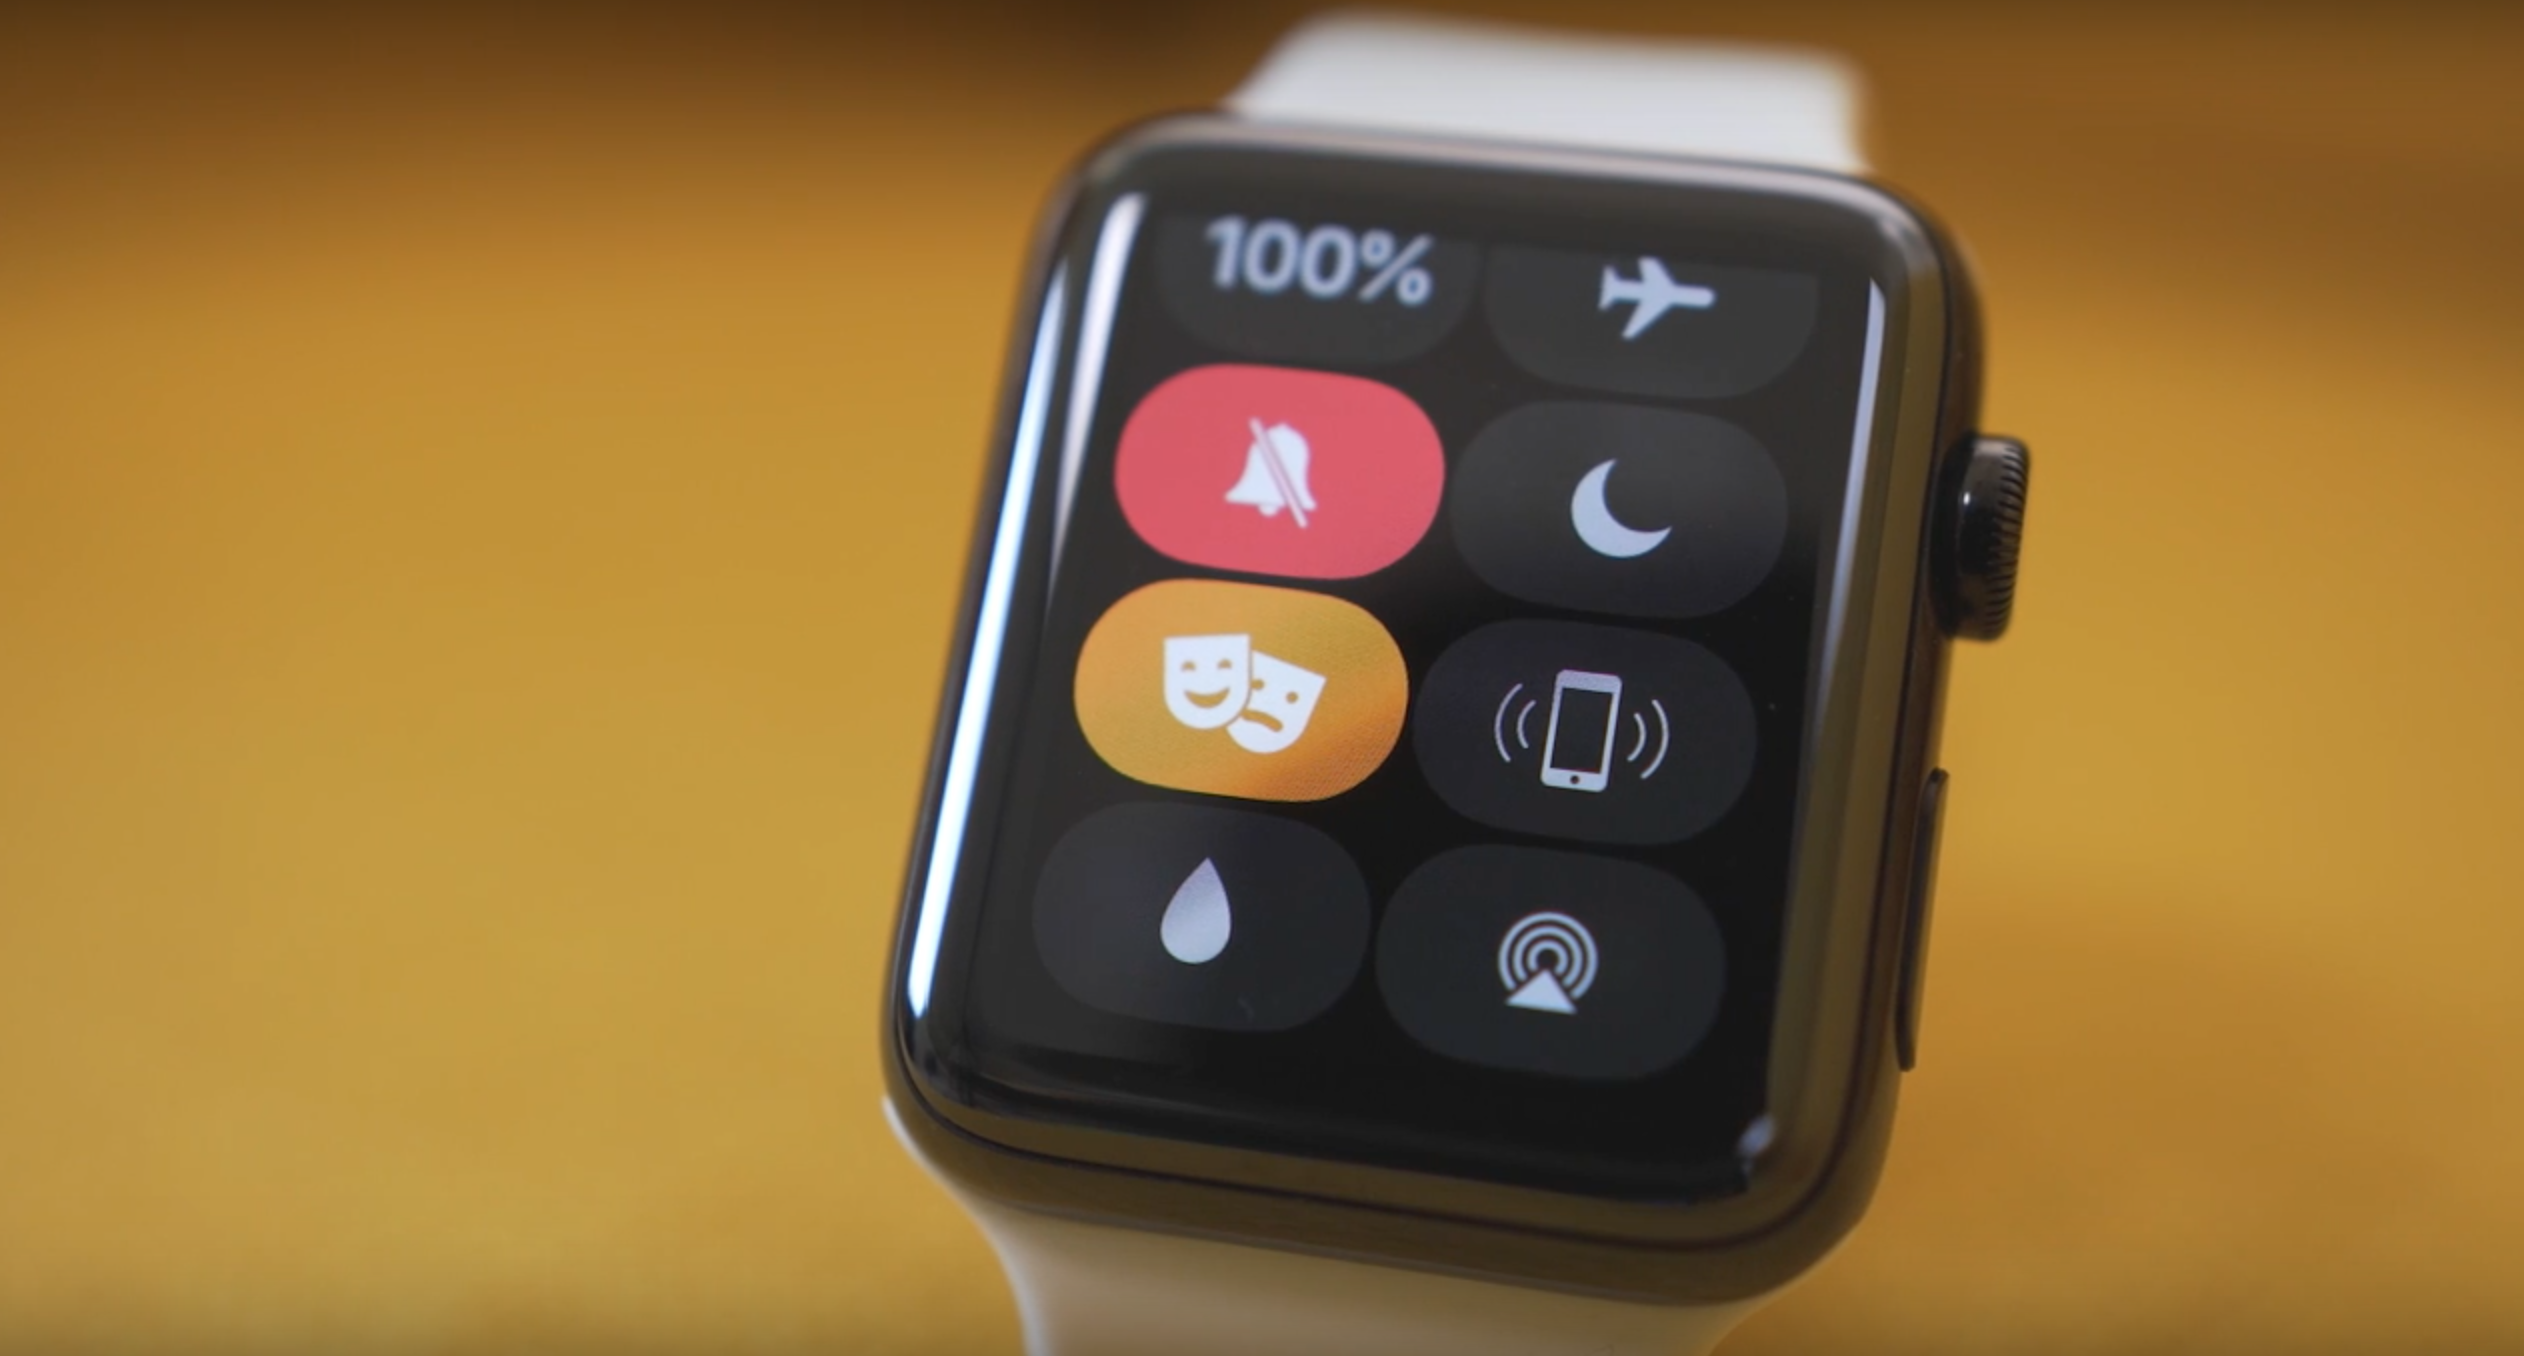 MacRumors Video Shows Theater Mode in WatchOS 3.2 Beta